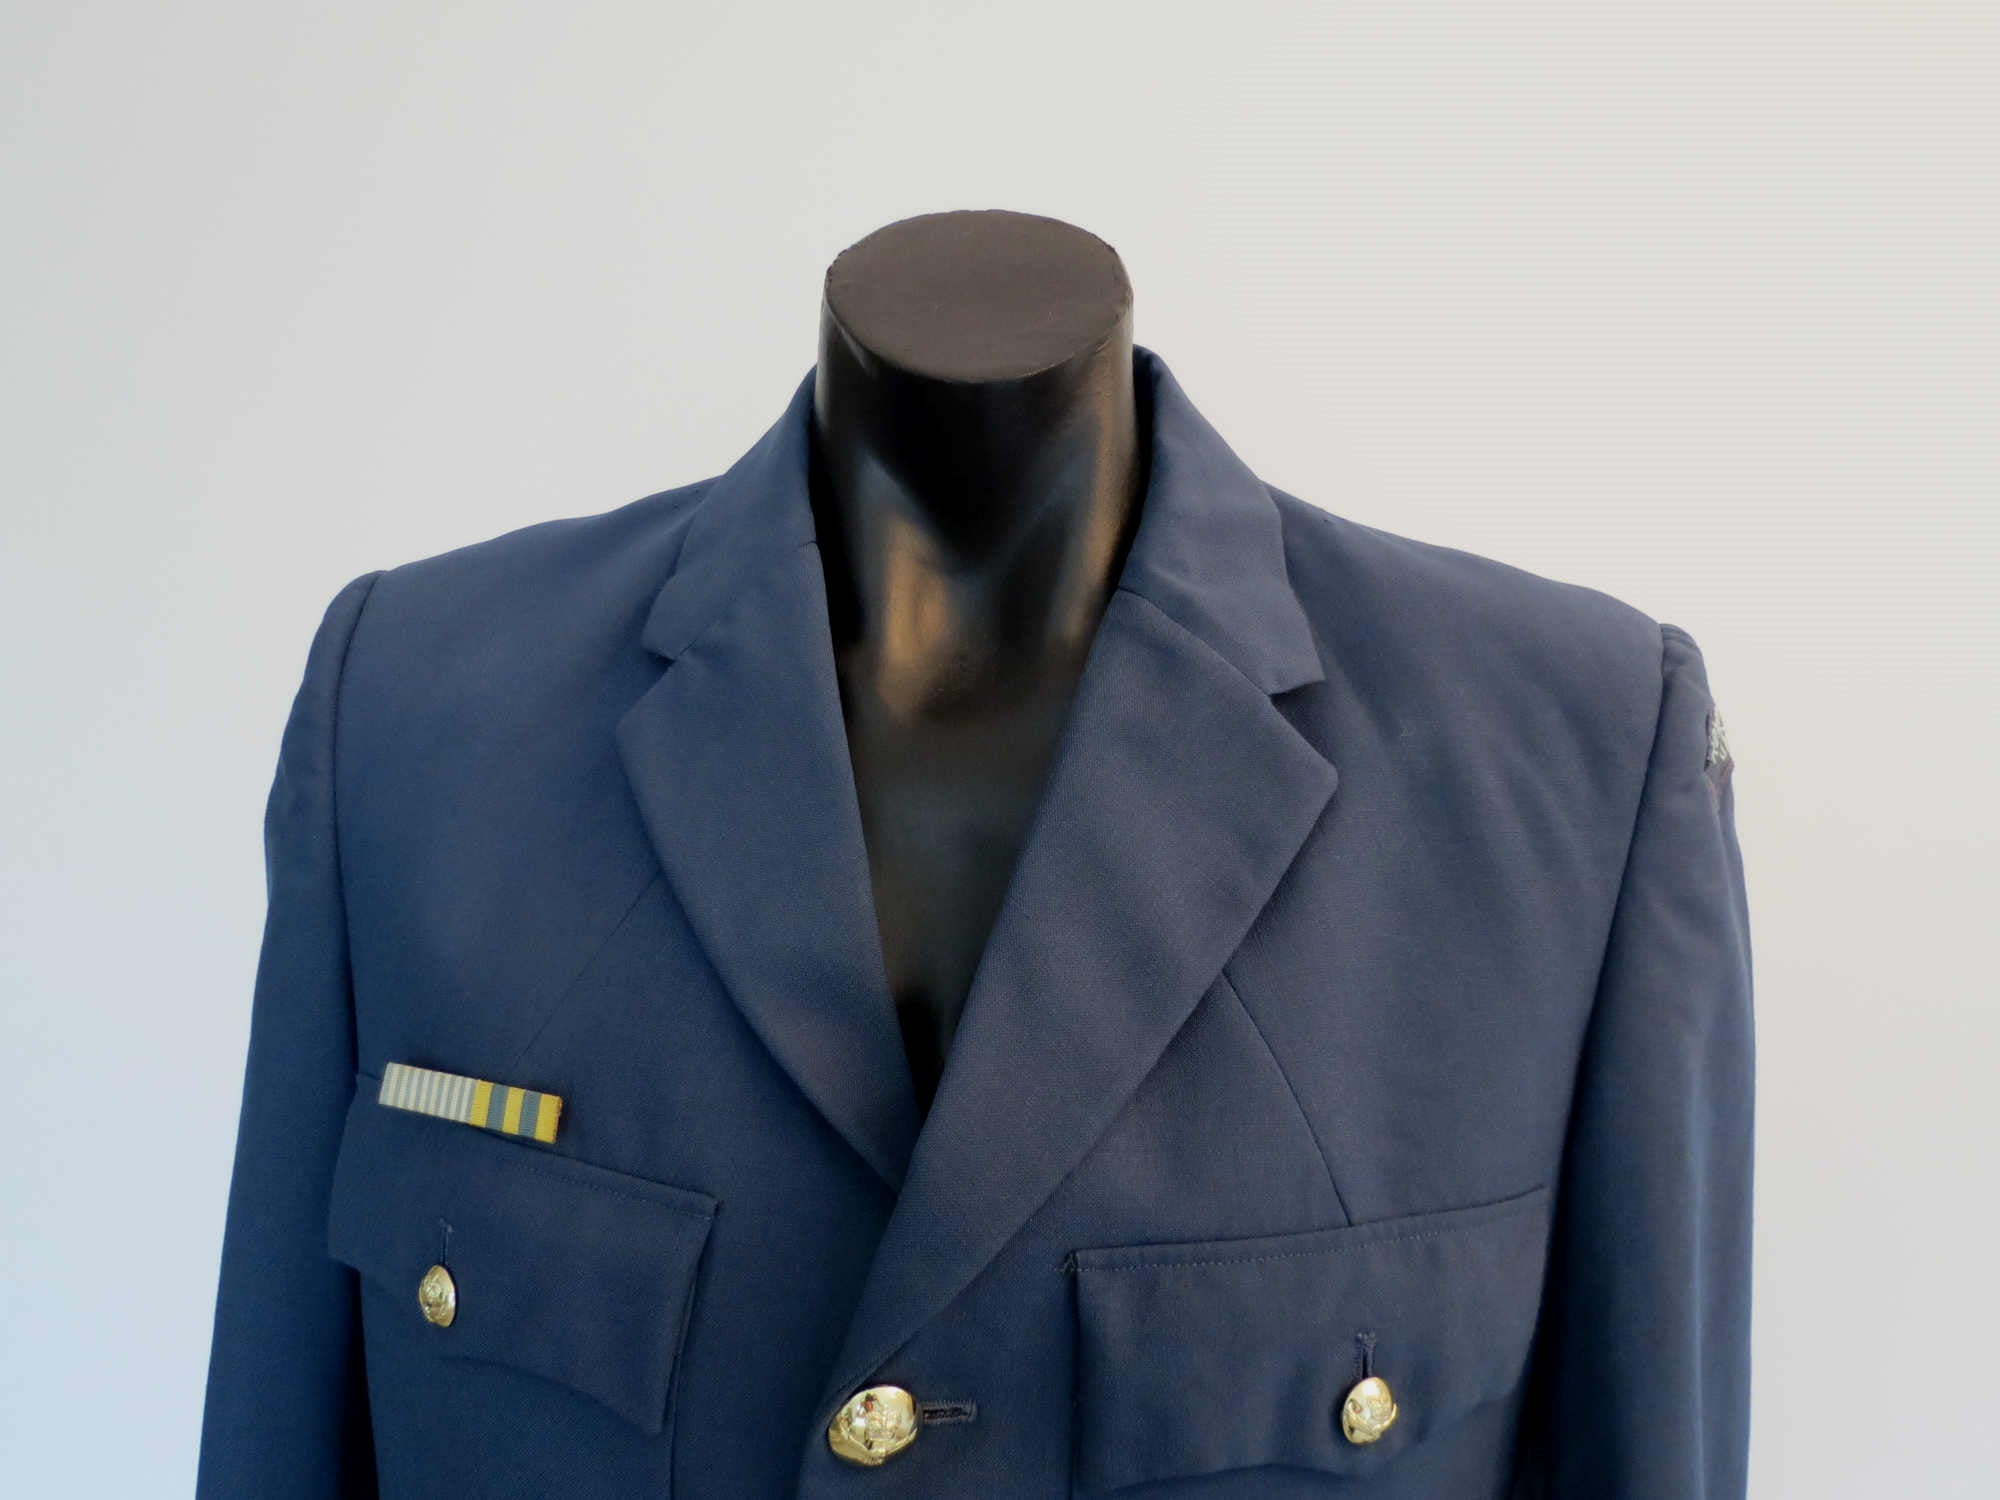 RAAF Wing Commander Jacket - Royal Australian Air Force - 1972